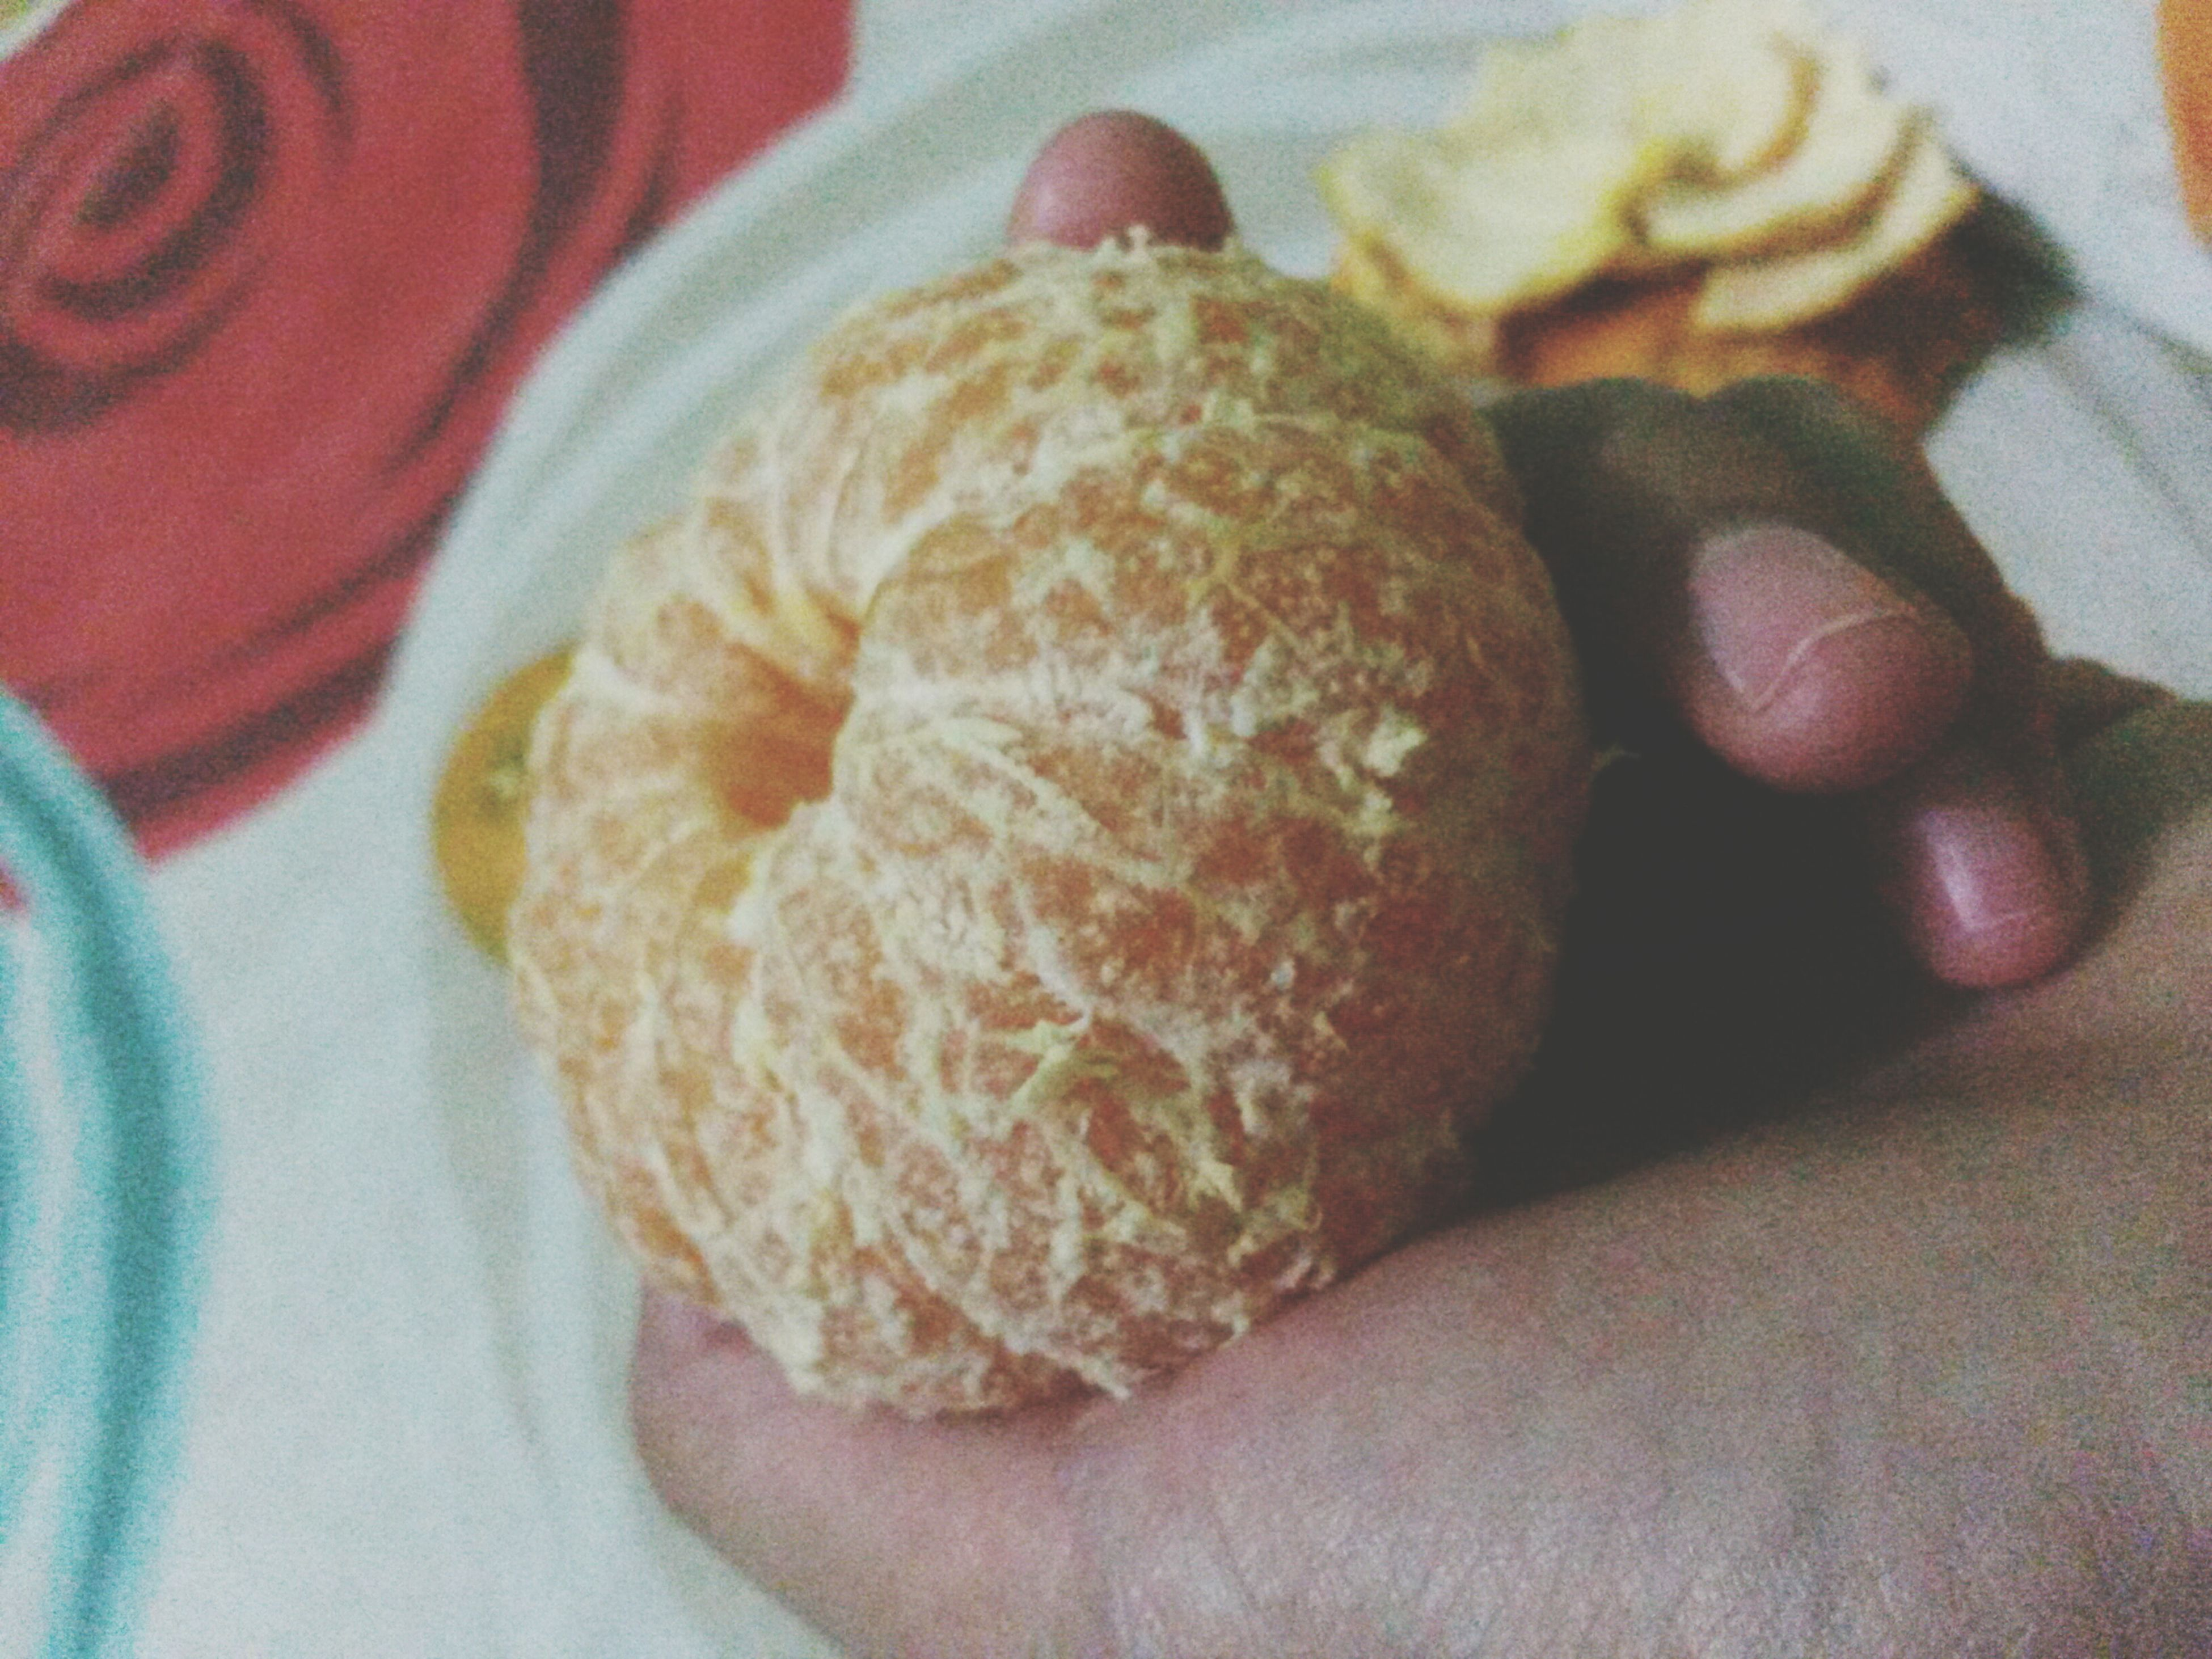 food and drink, food, indoors, freshness, sweet food, still life, ready-to-eat, close-up, indulgence, unhealthy eating, dessert, table, plate, temptation, high angle view, part of, snack, one person, baked